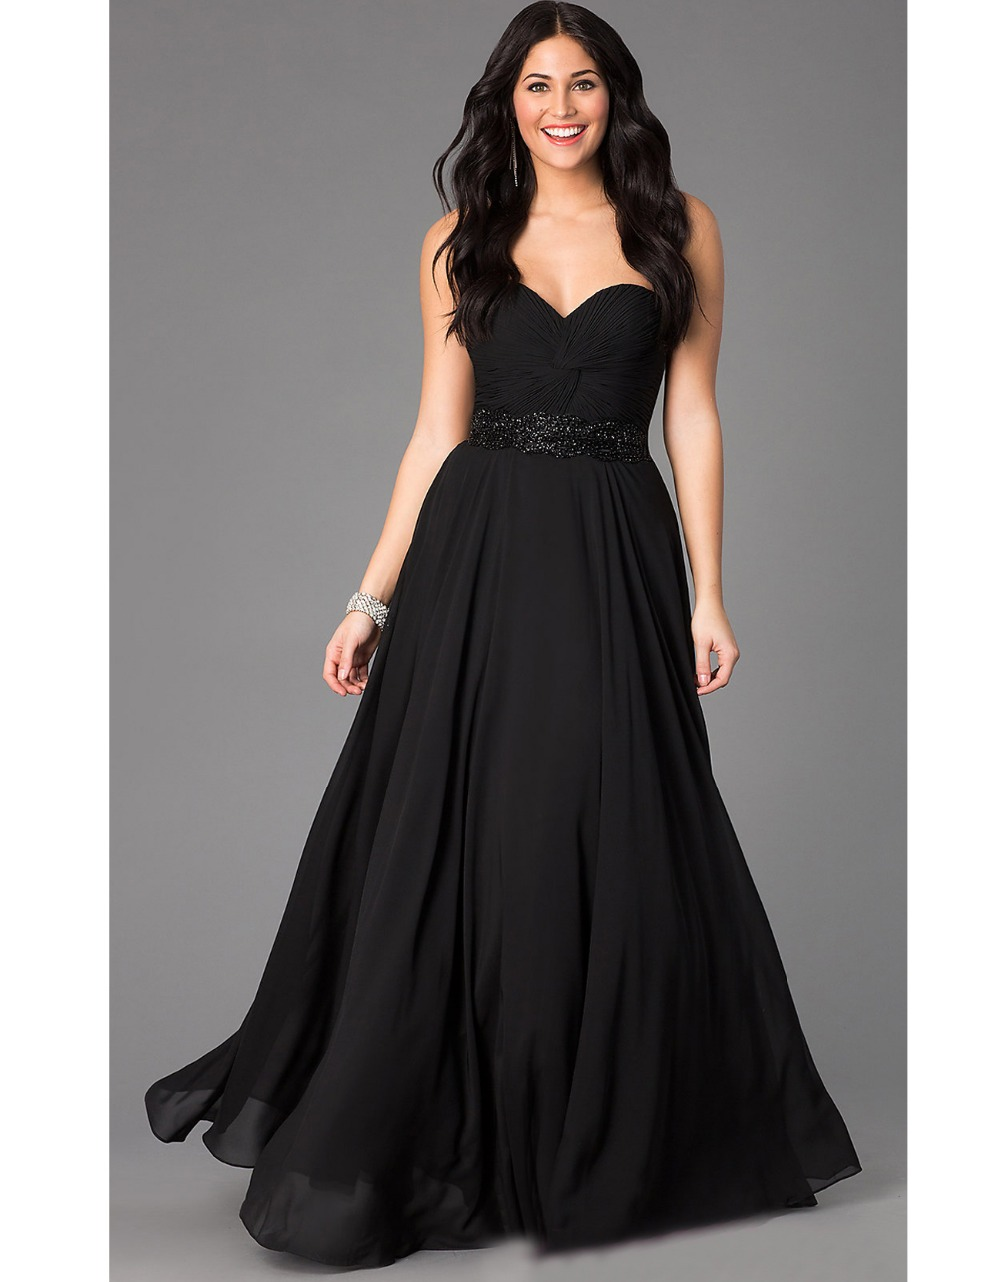 Black dresses can make any woman look fashion forward and effortless, and whether you're looking for a Little Black Dress for everyday or a special gown with a striking black and white pattern, you can definitely find it here.